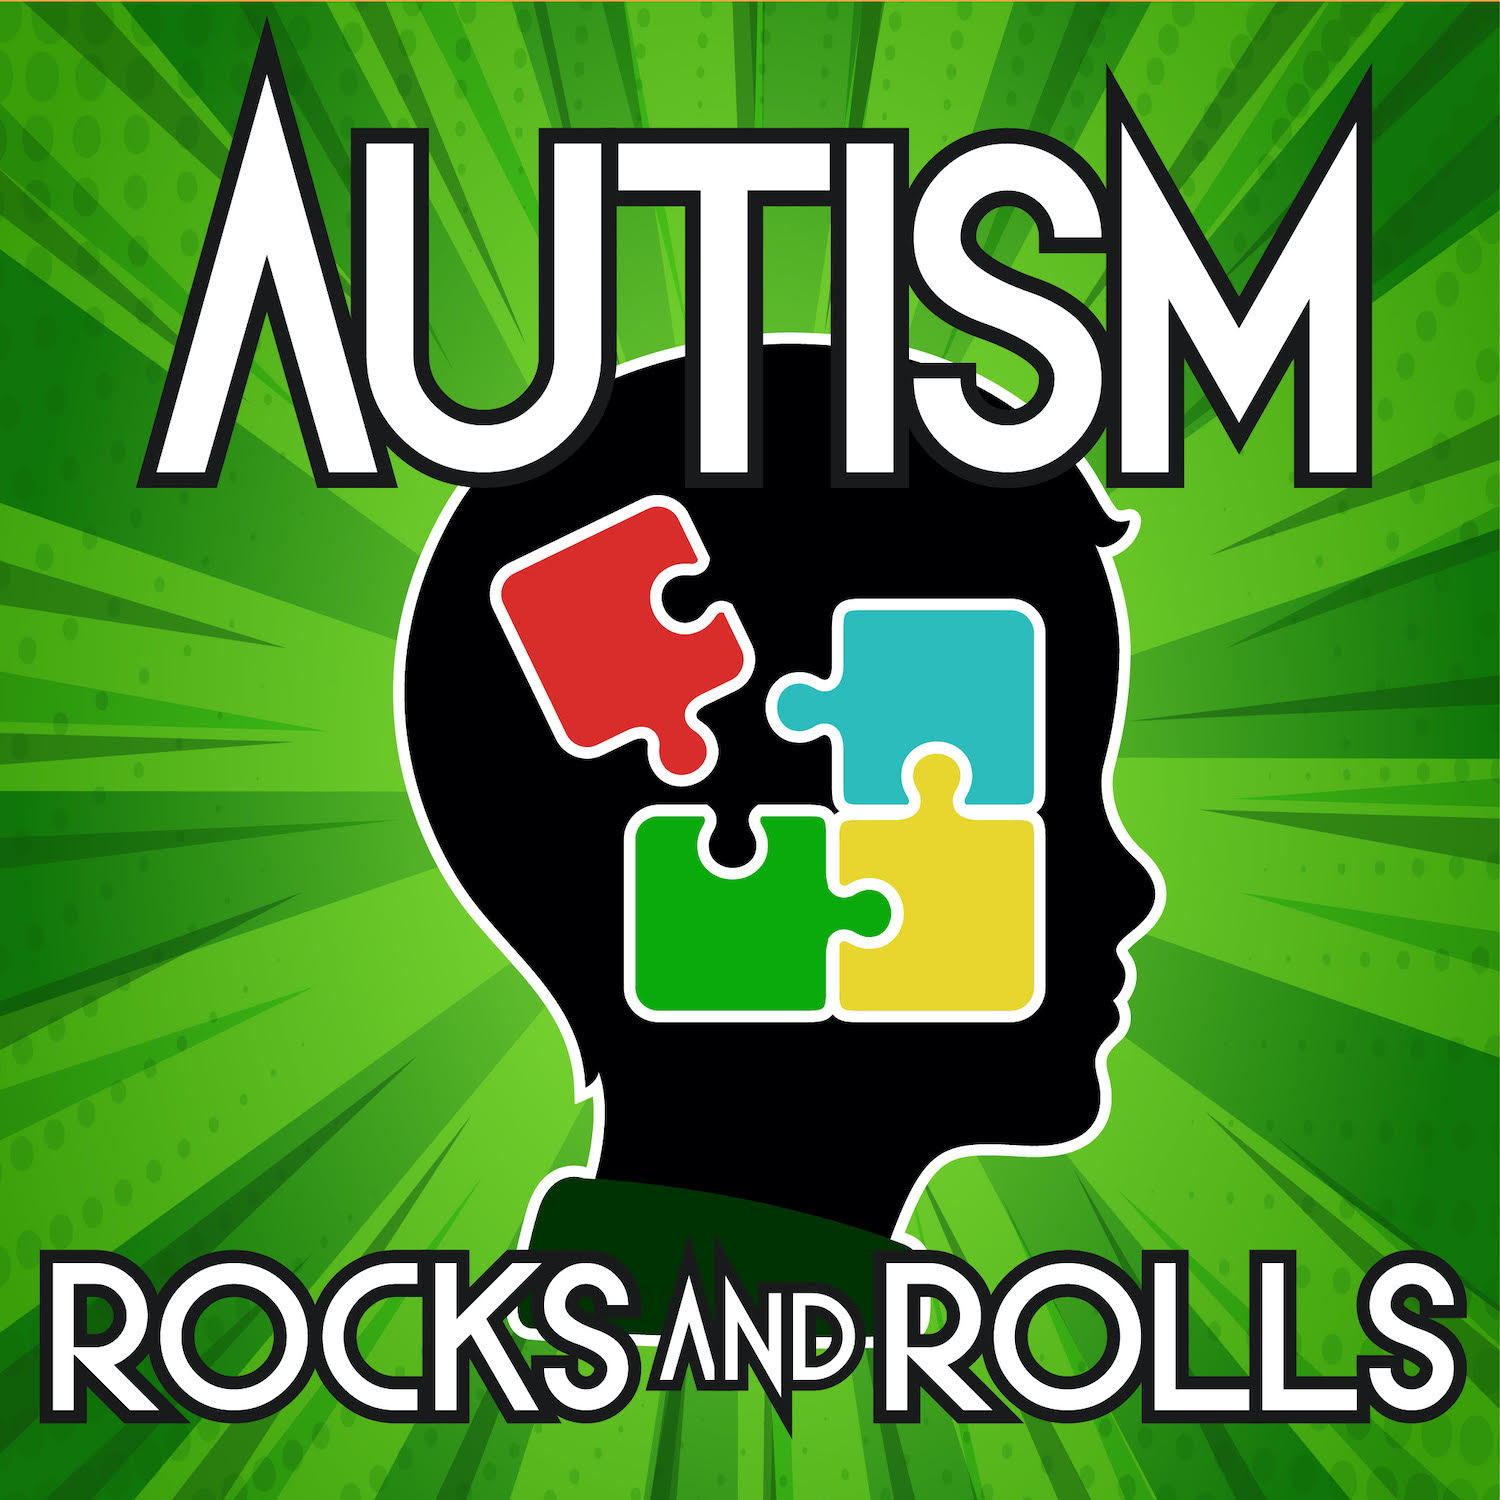 Autism Rocks and Rolls